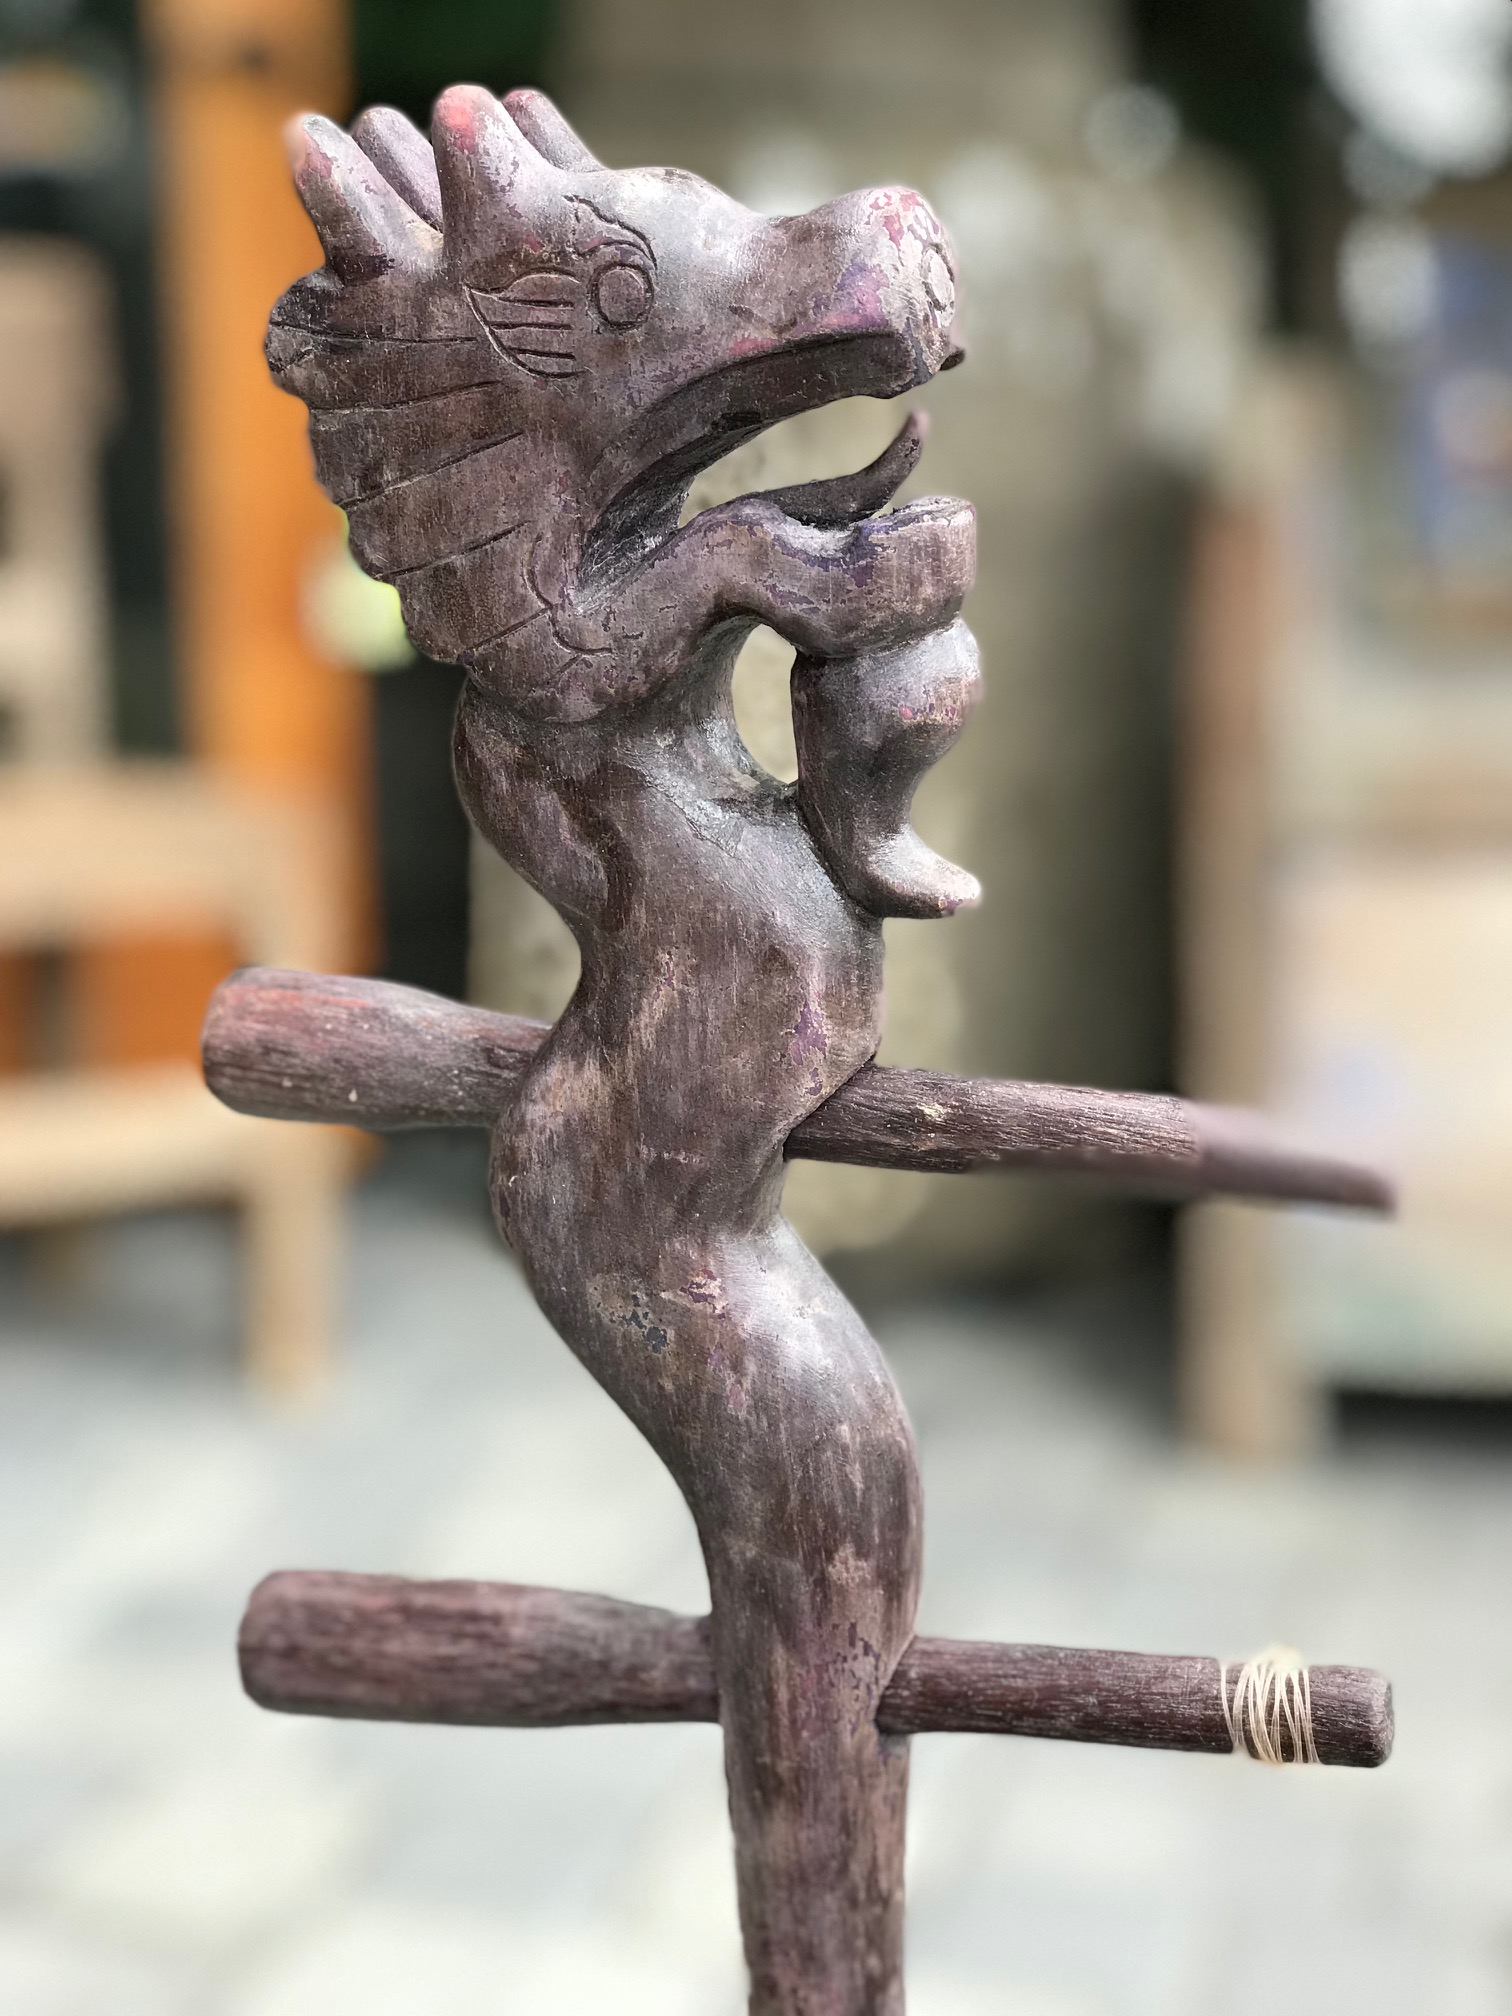 """detail of top with tuning pegs - 2 String Musical Instrument played with a bow (strings and bow missing), Chinese, wood, snakeskin, pigment, 29 1/2"""" x 3 1/2"""" x 6 1/2"""". $400.; thedavidalancollection.com , Solana Beach, CA"""